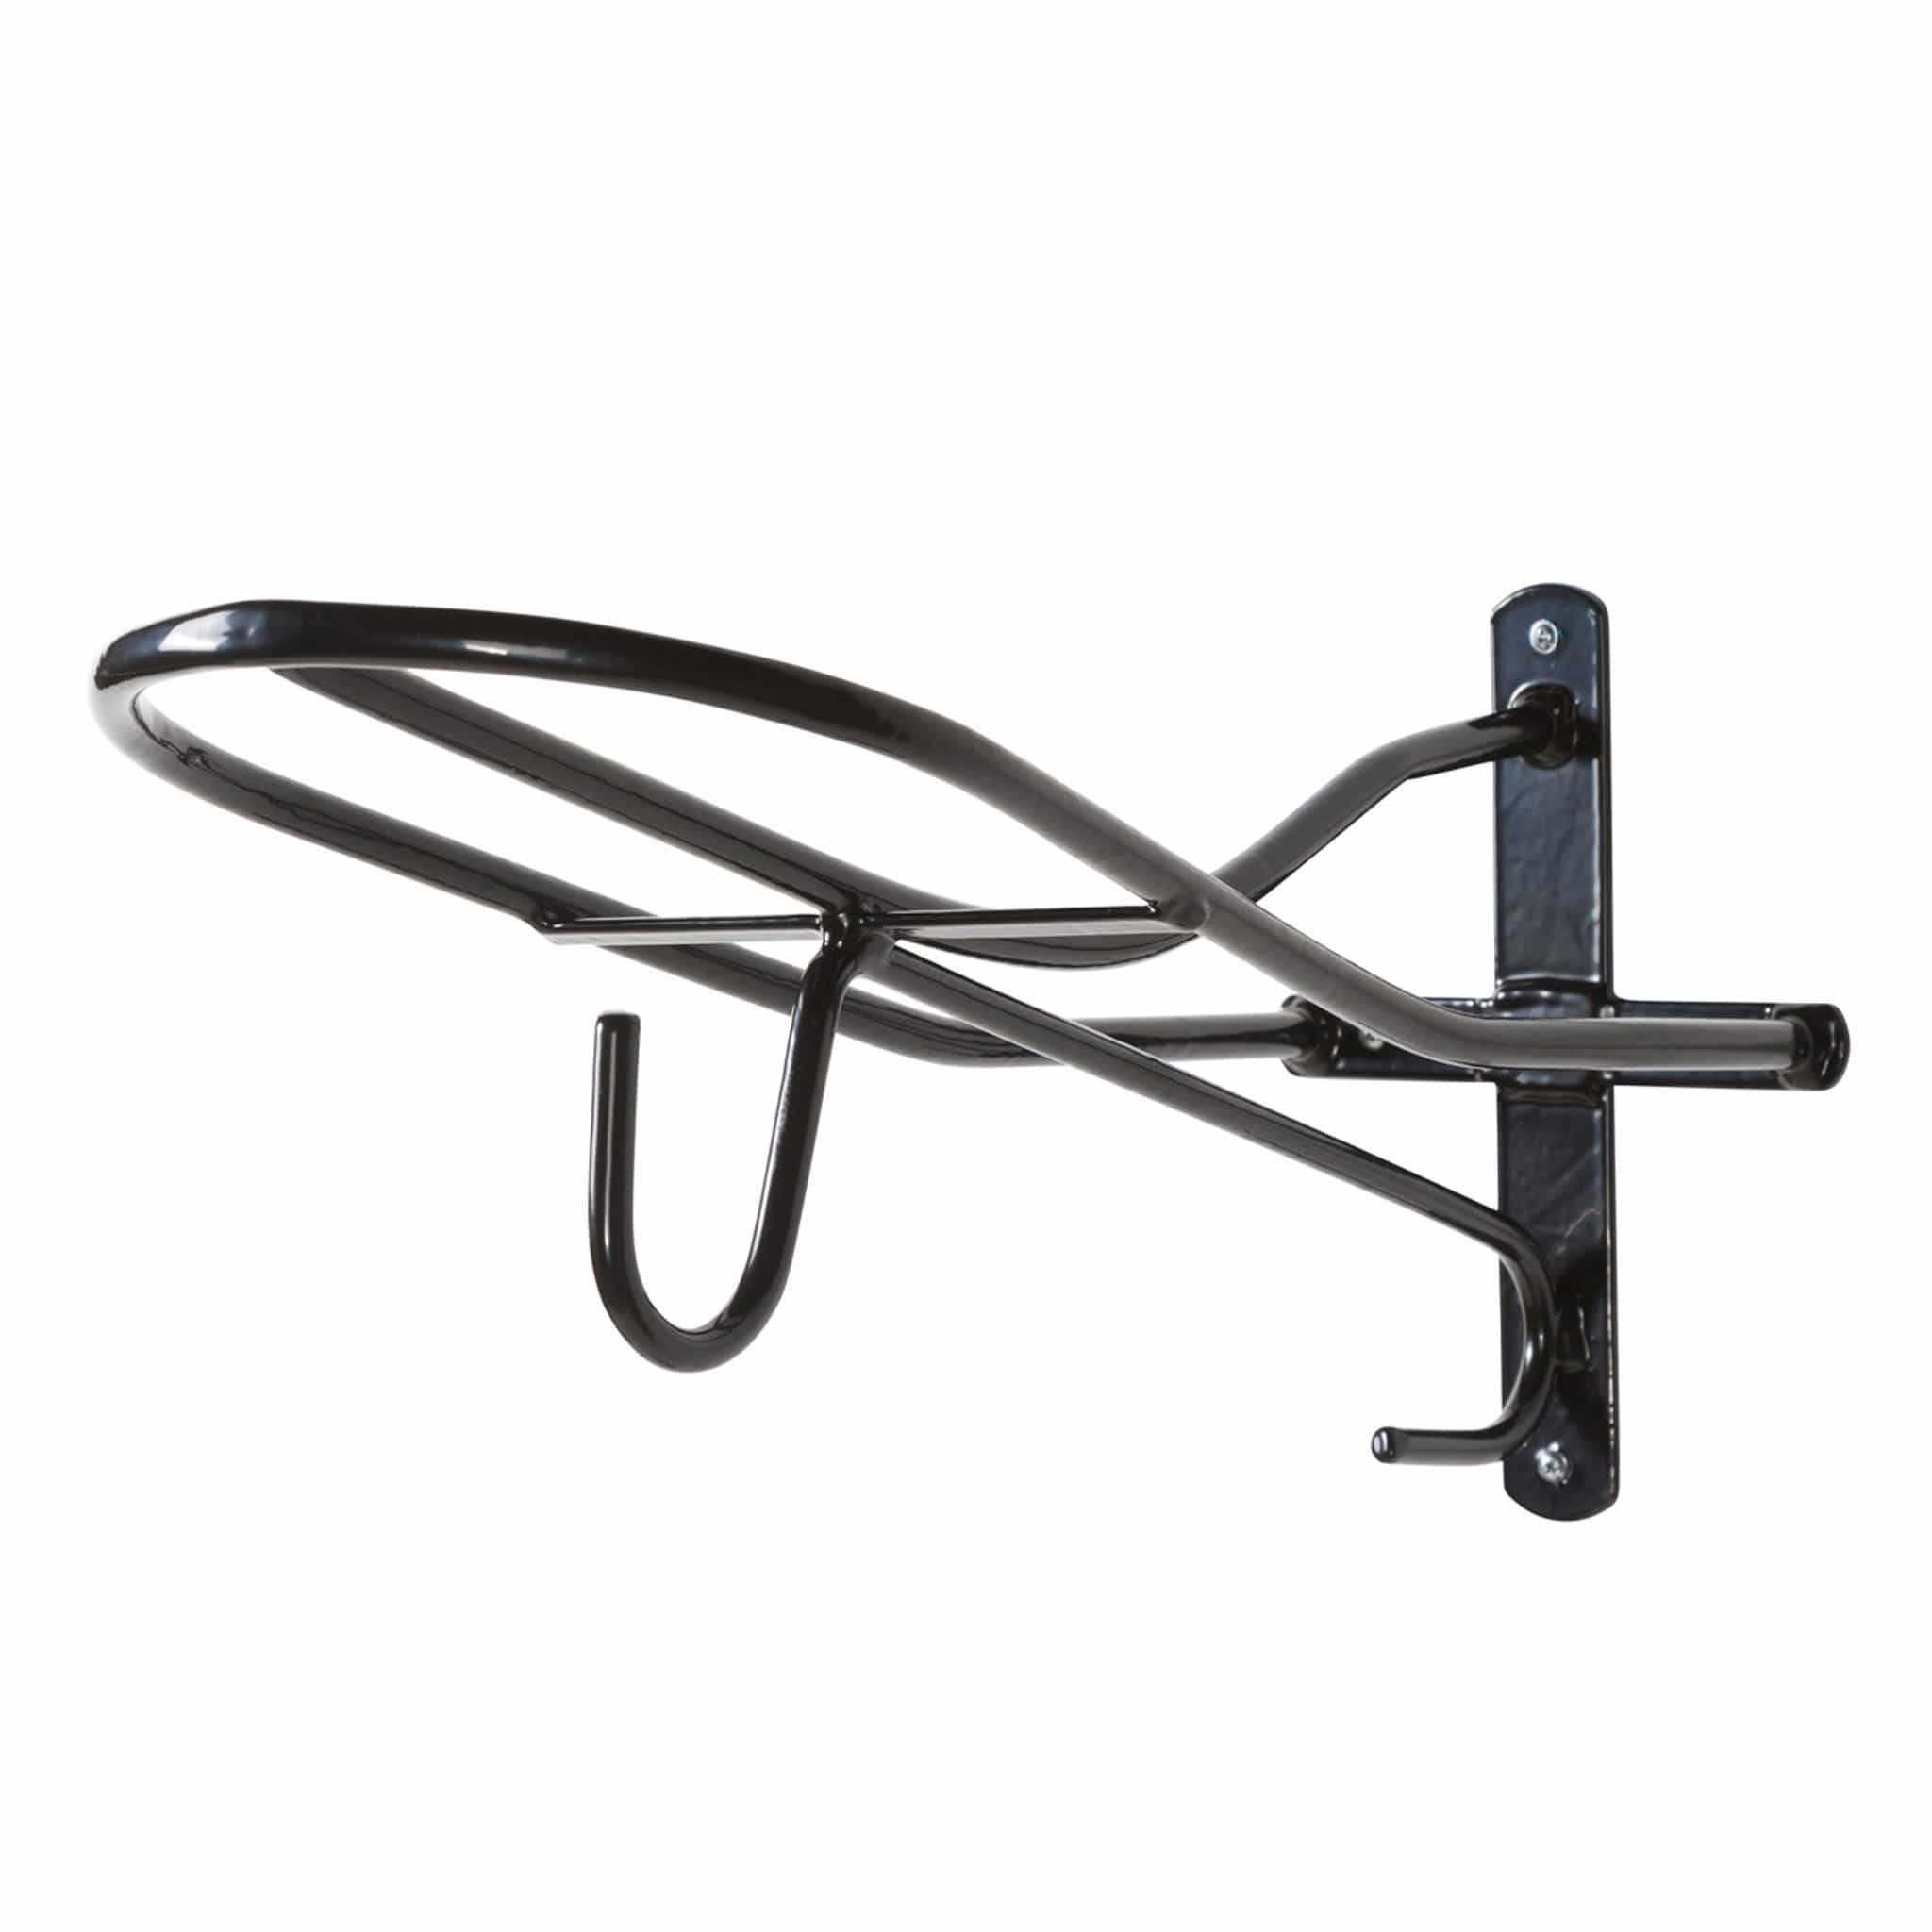 Stubbs Saddle Hook in Black STB2725